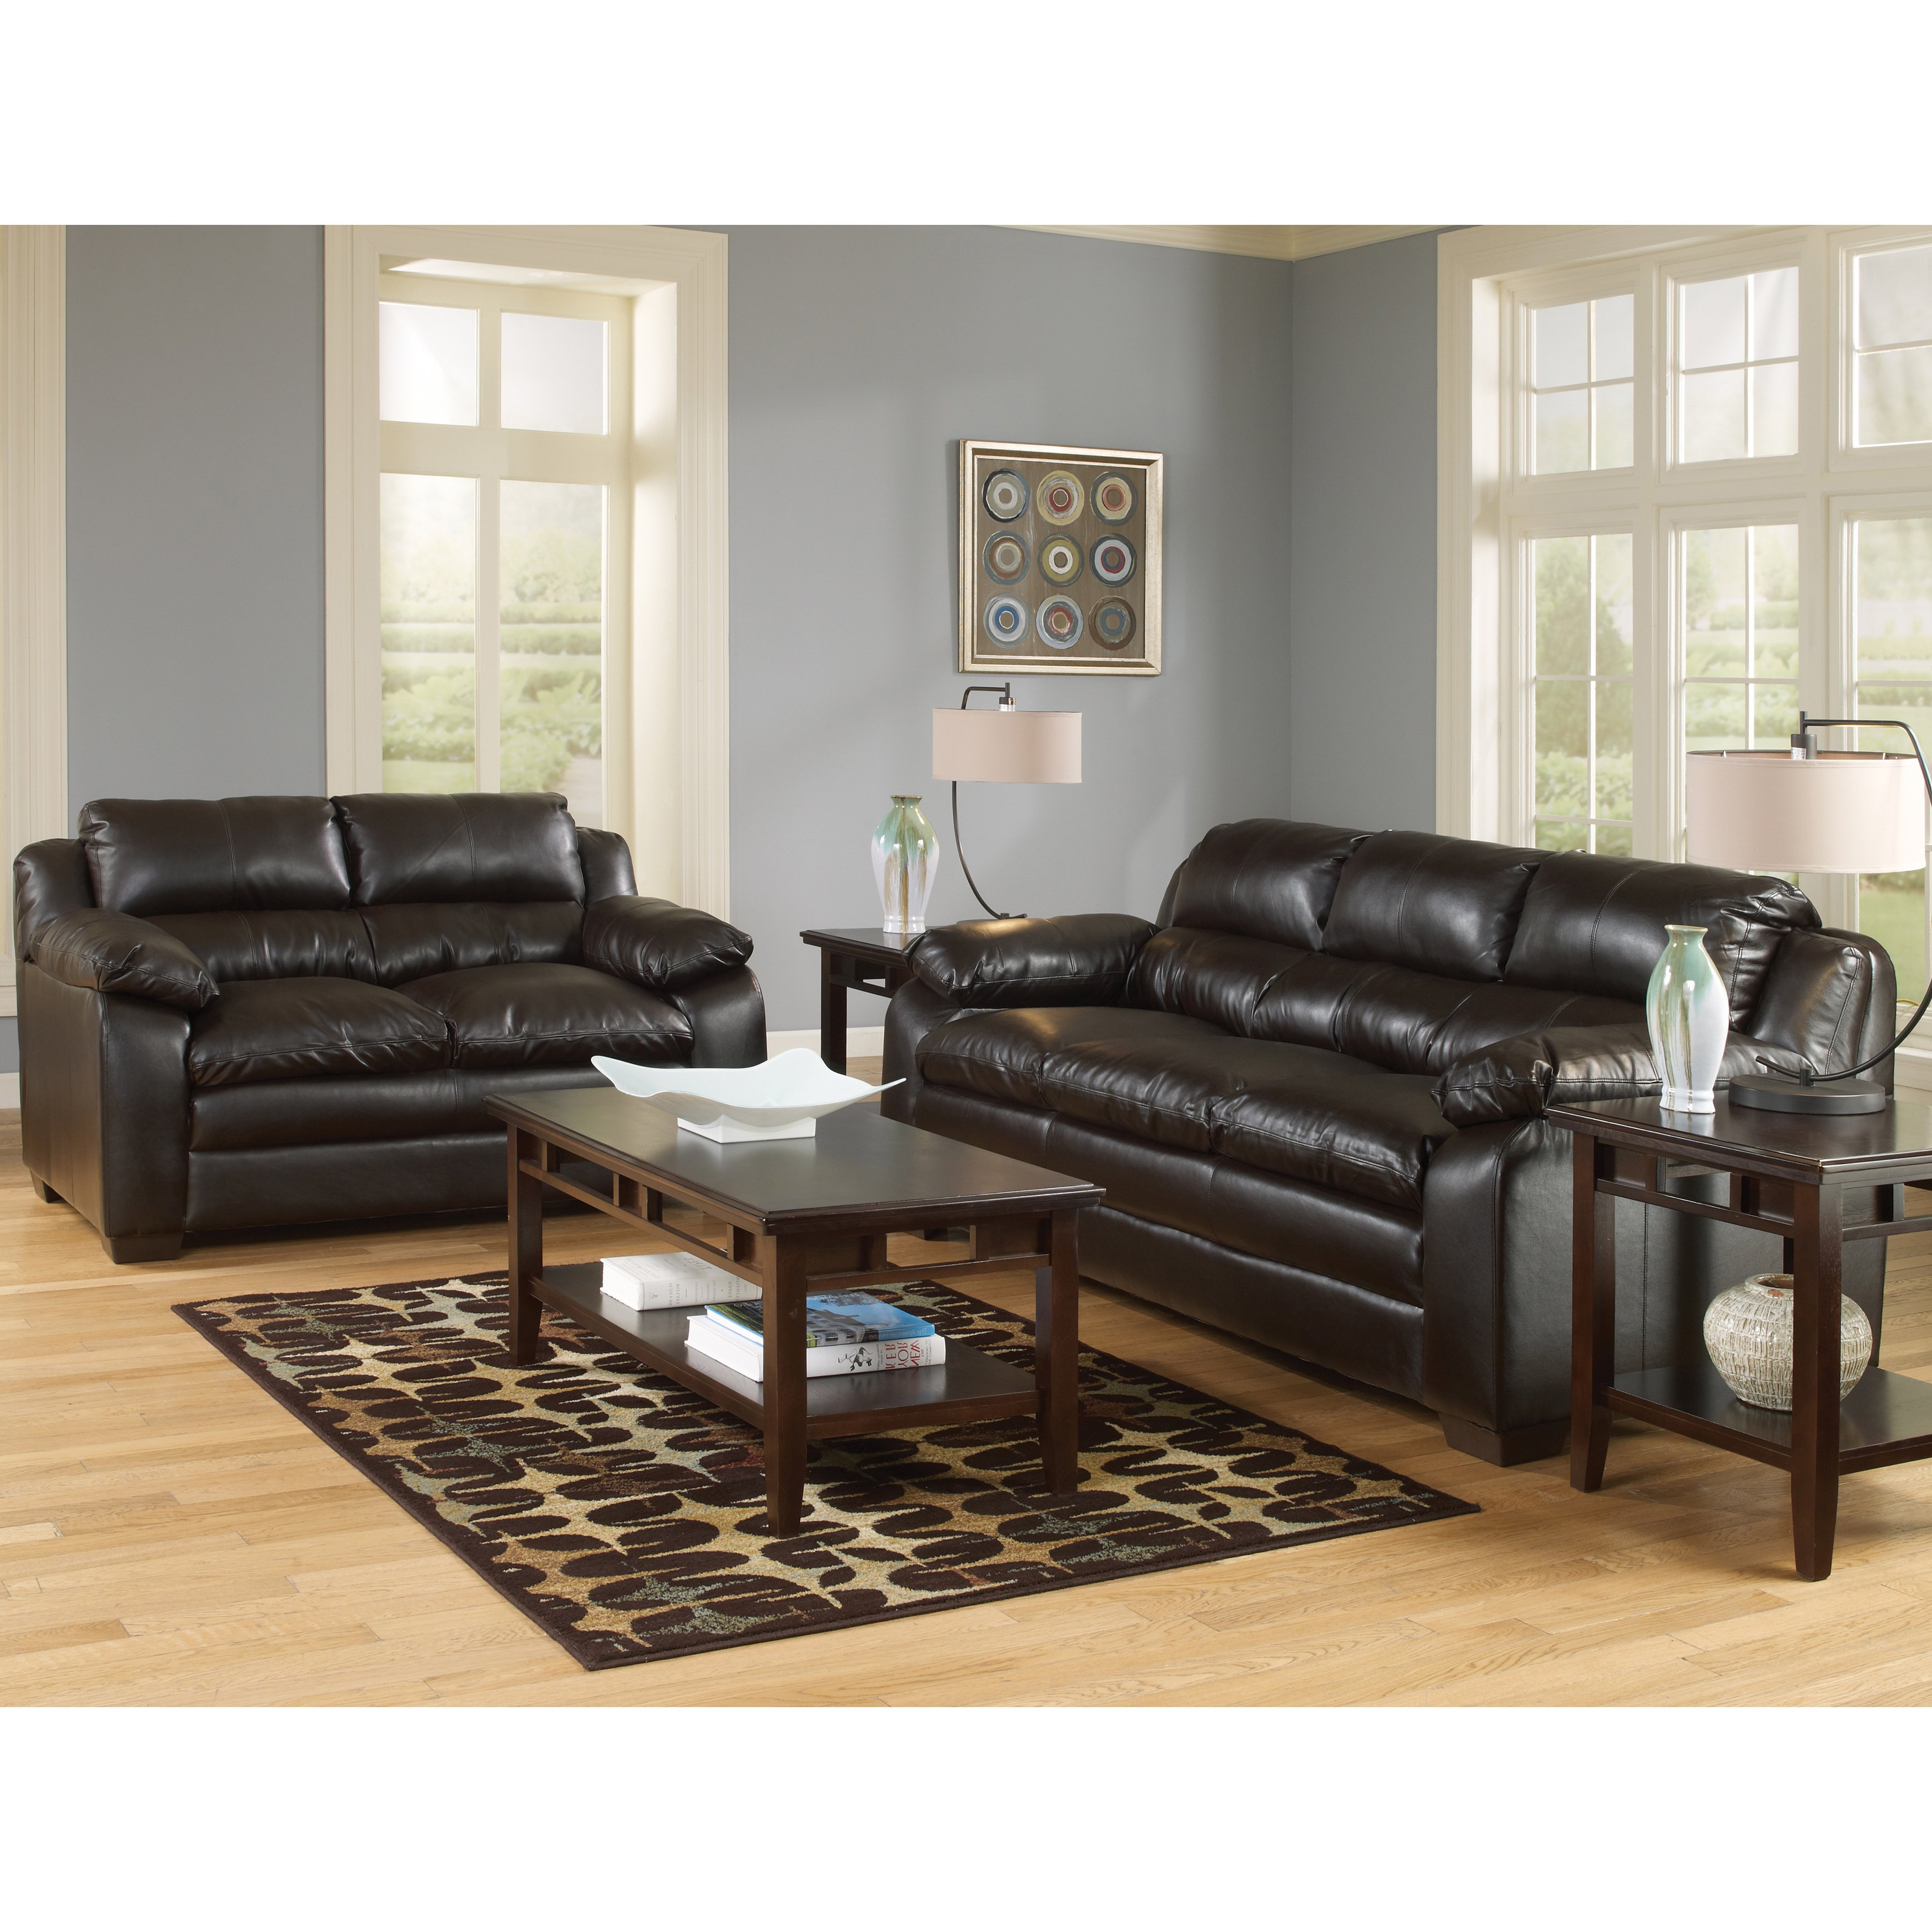 Shop Art Van Maddox Espresso Sofa And Loveseat Set – Free Shipping Throughout Well Known Maddox Oversized Sofa Chairs (Gallery 11 of 20)